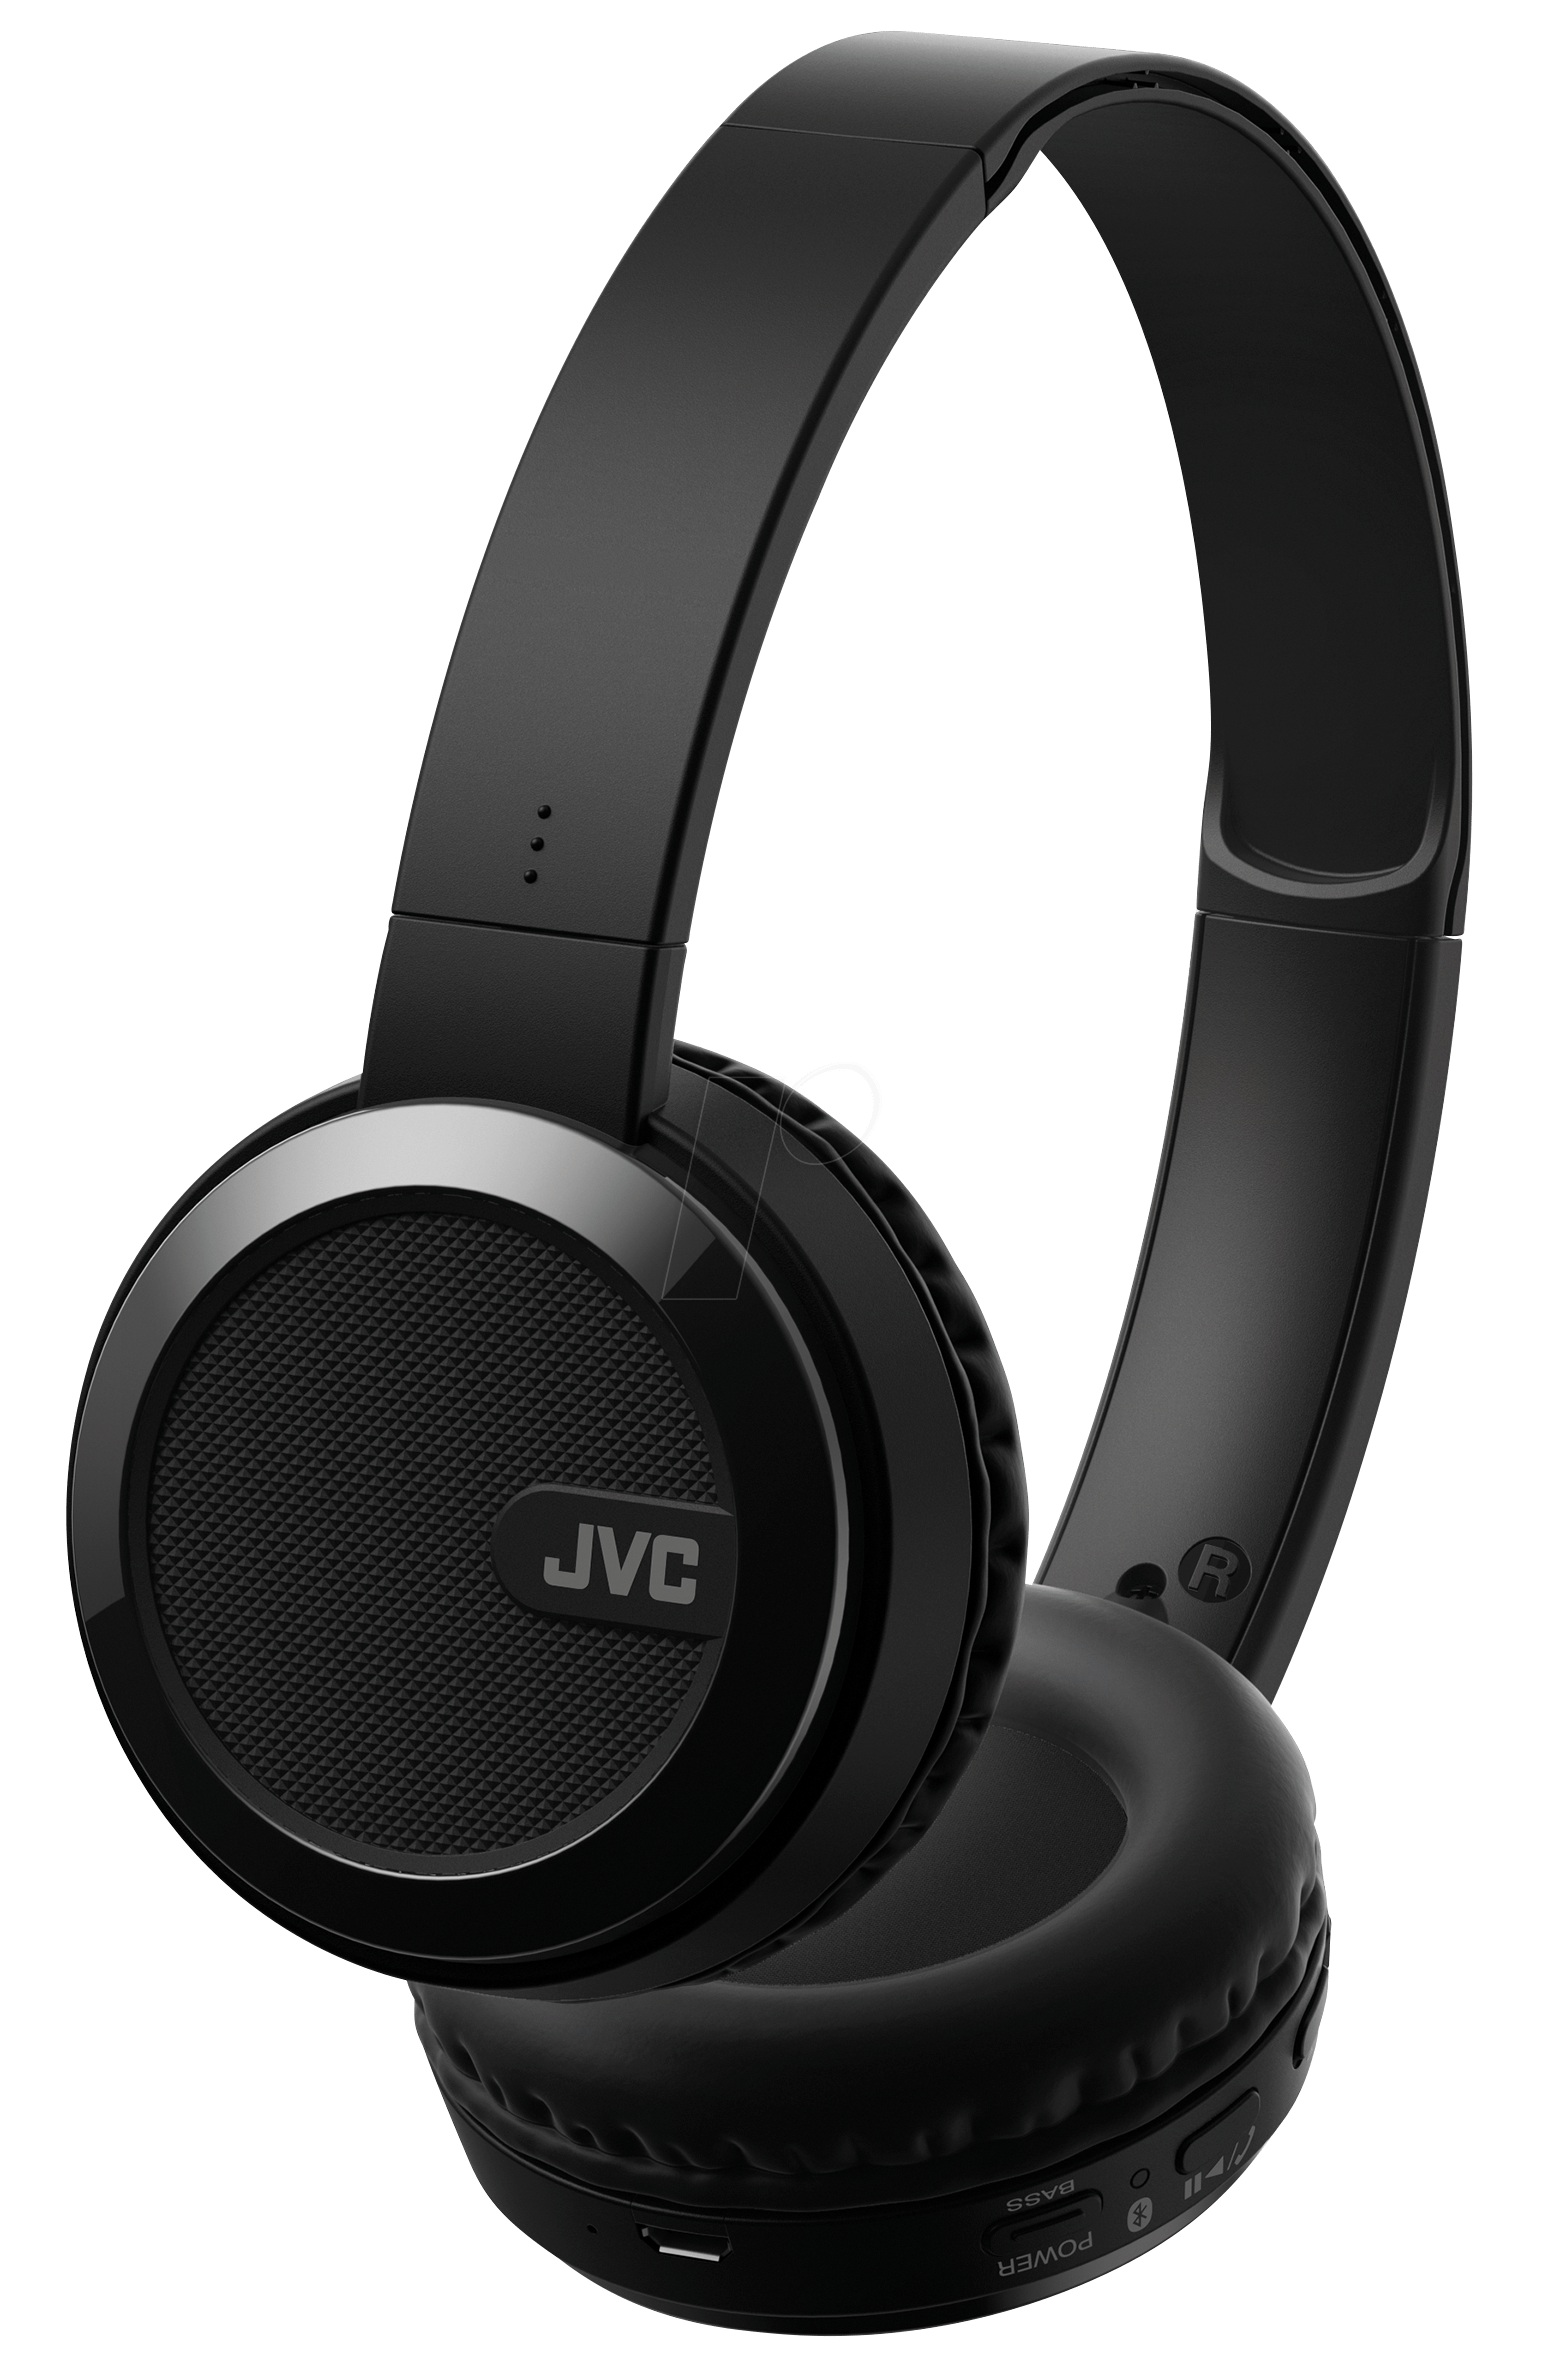 jvc ha s40btbe bluetooth kopfh rer on ear schwarz bei. Black Bedroom Furniture Sets. Home Design Ideas